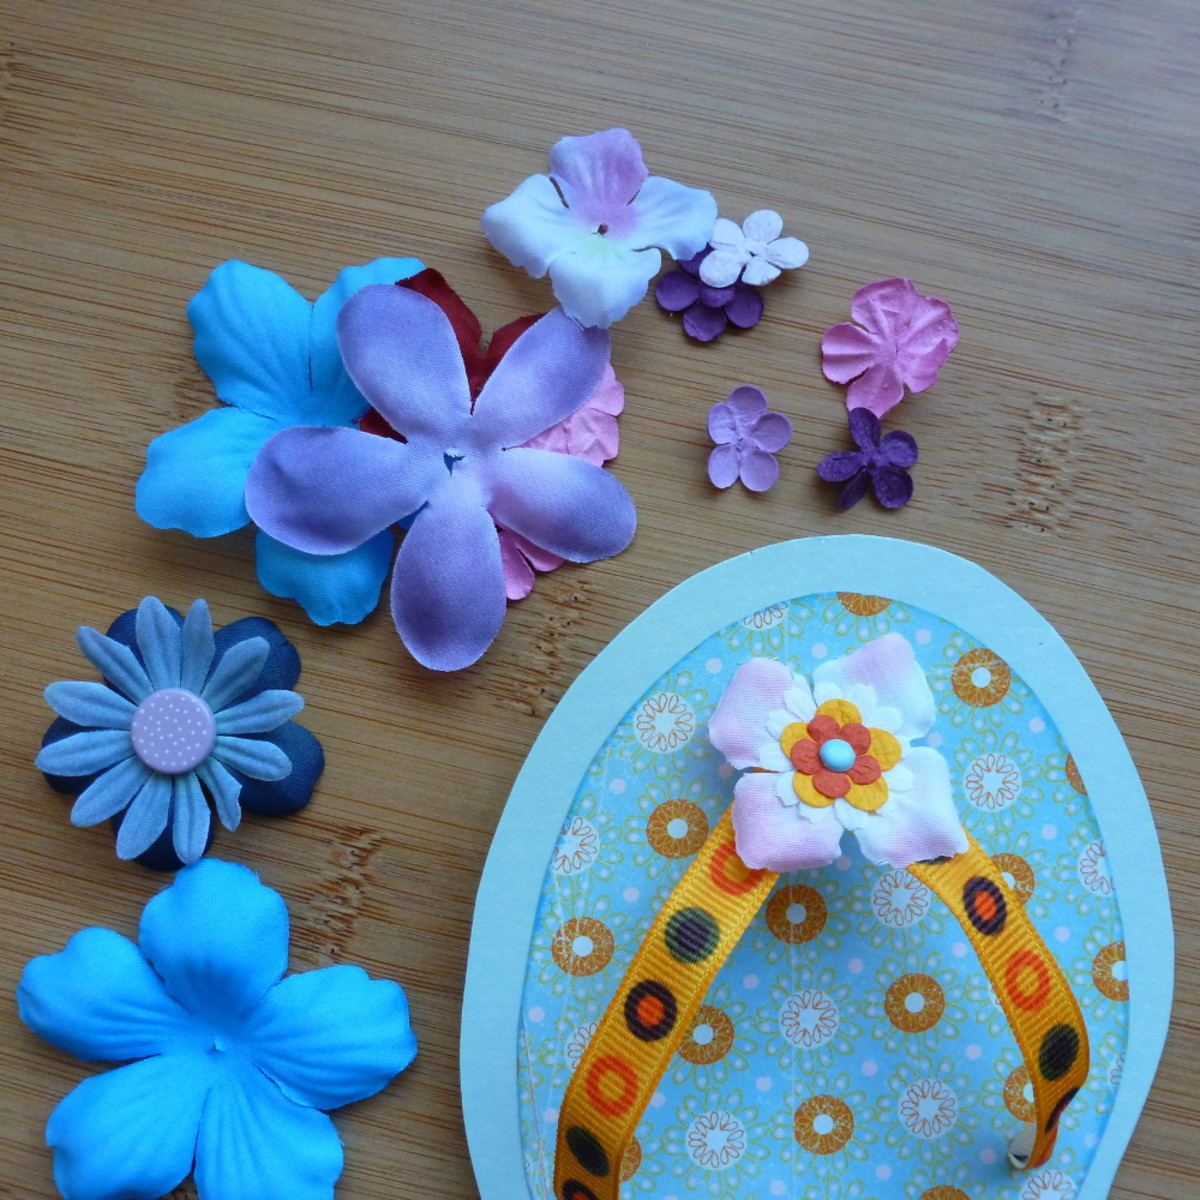 Adding floral embellishments to the shoe card handmade DIY flip flop cards to make.